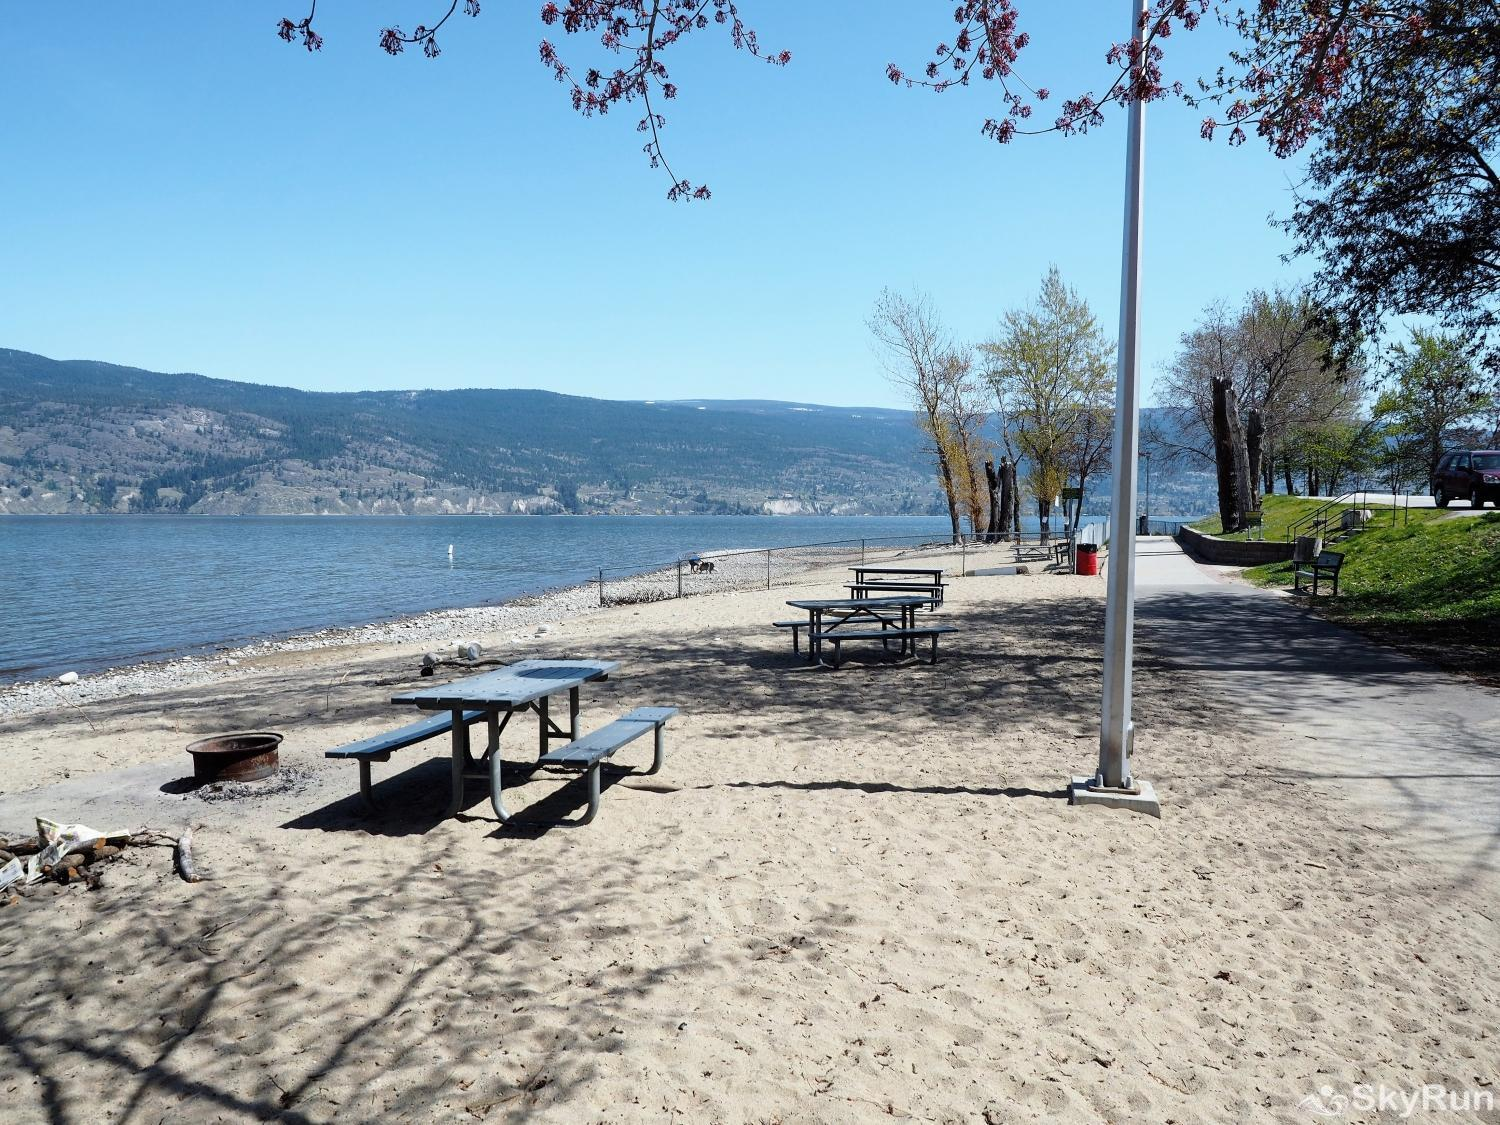 Old Summerland 4 bedroom townhouse The beach front dog park with fire pits is about 500 meters away